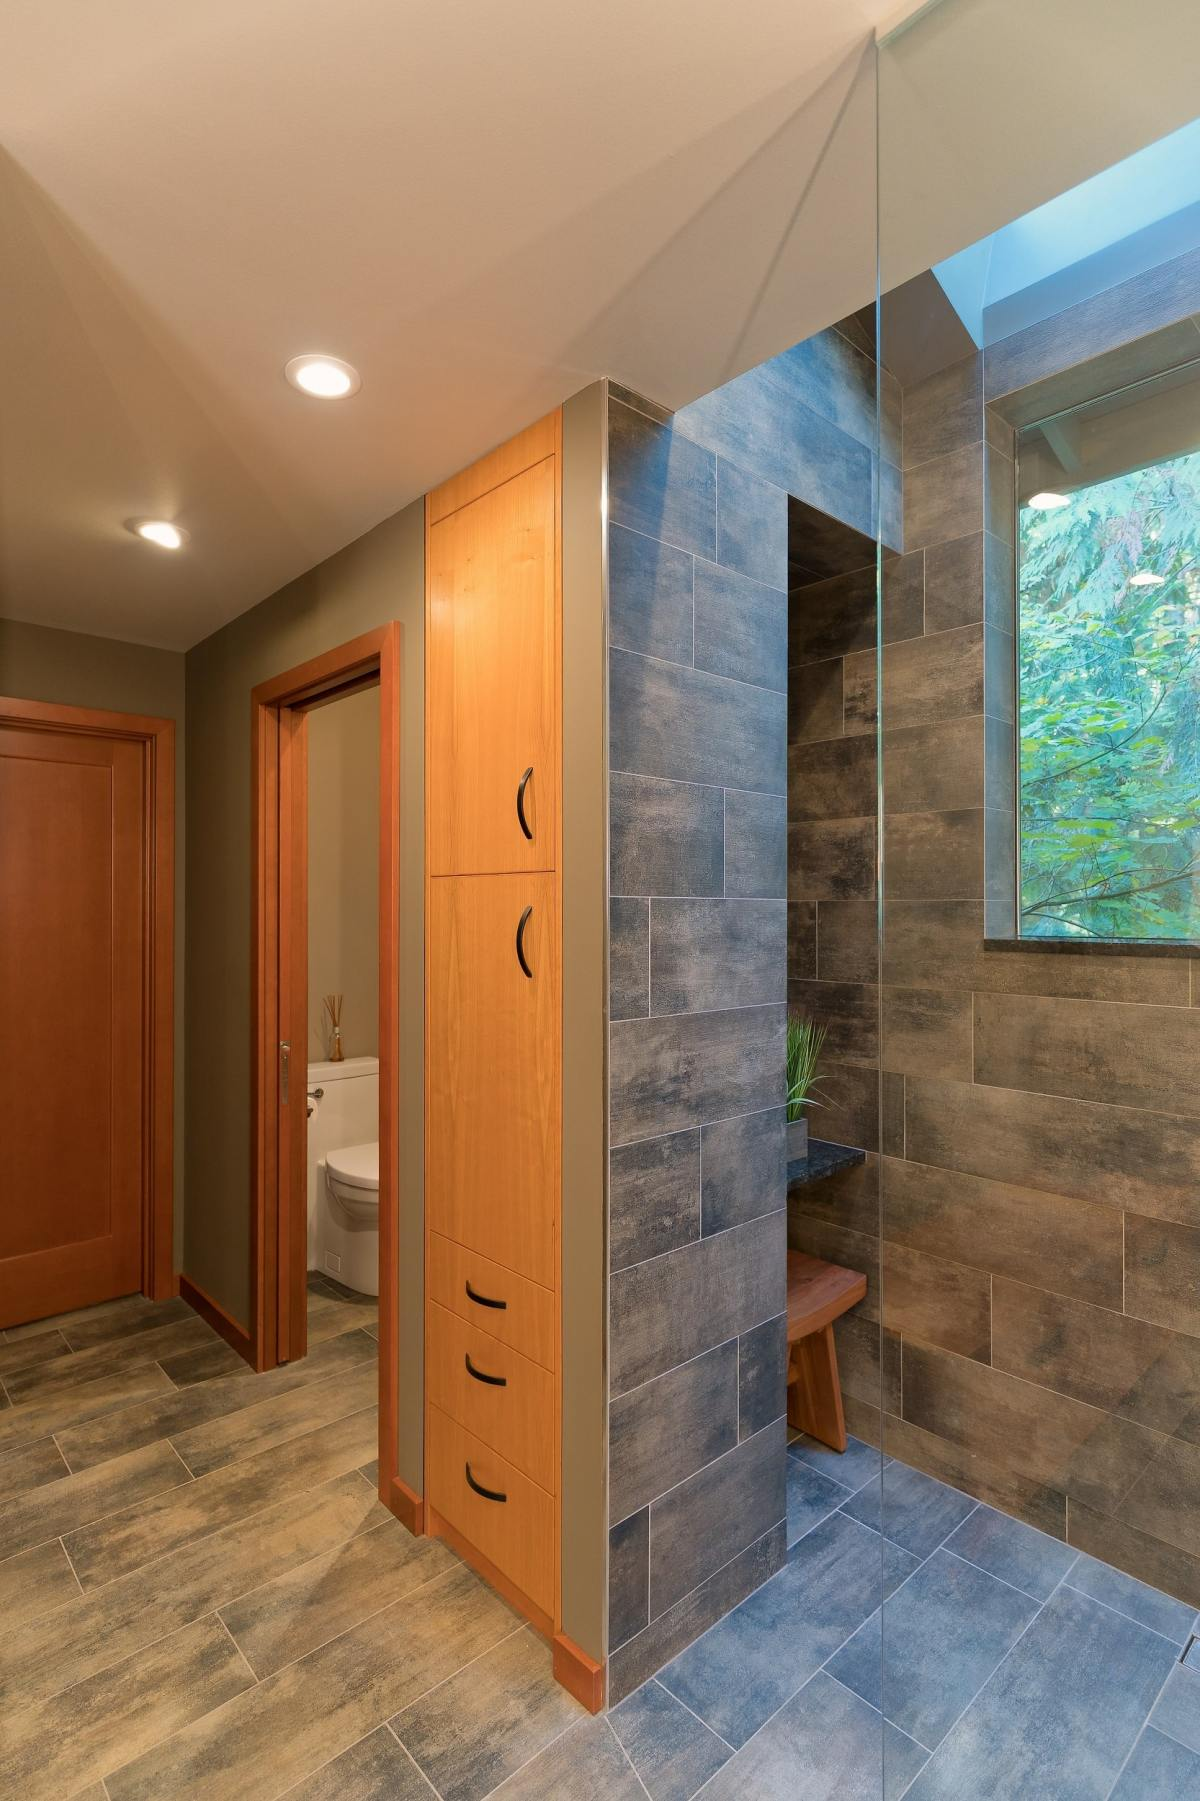 tall tan wood cabinet inbetween a toilet room & shower with glass barrier